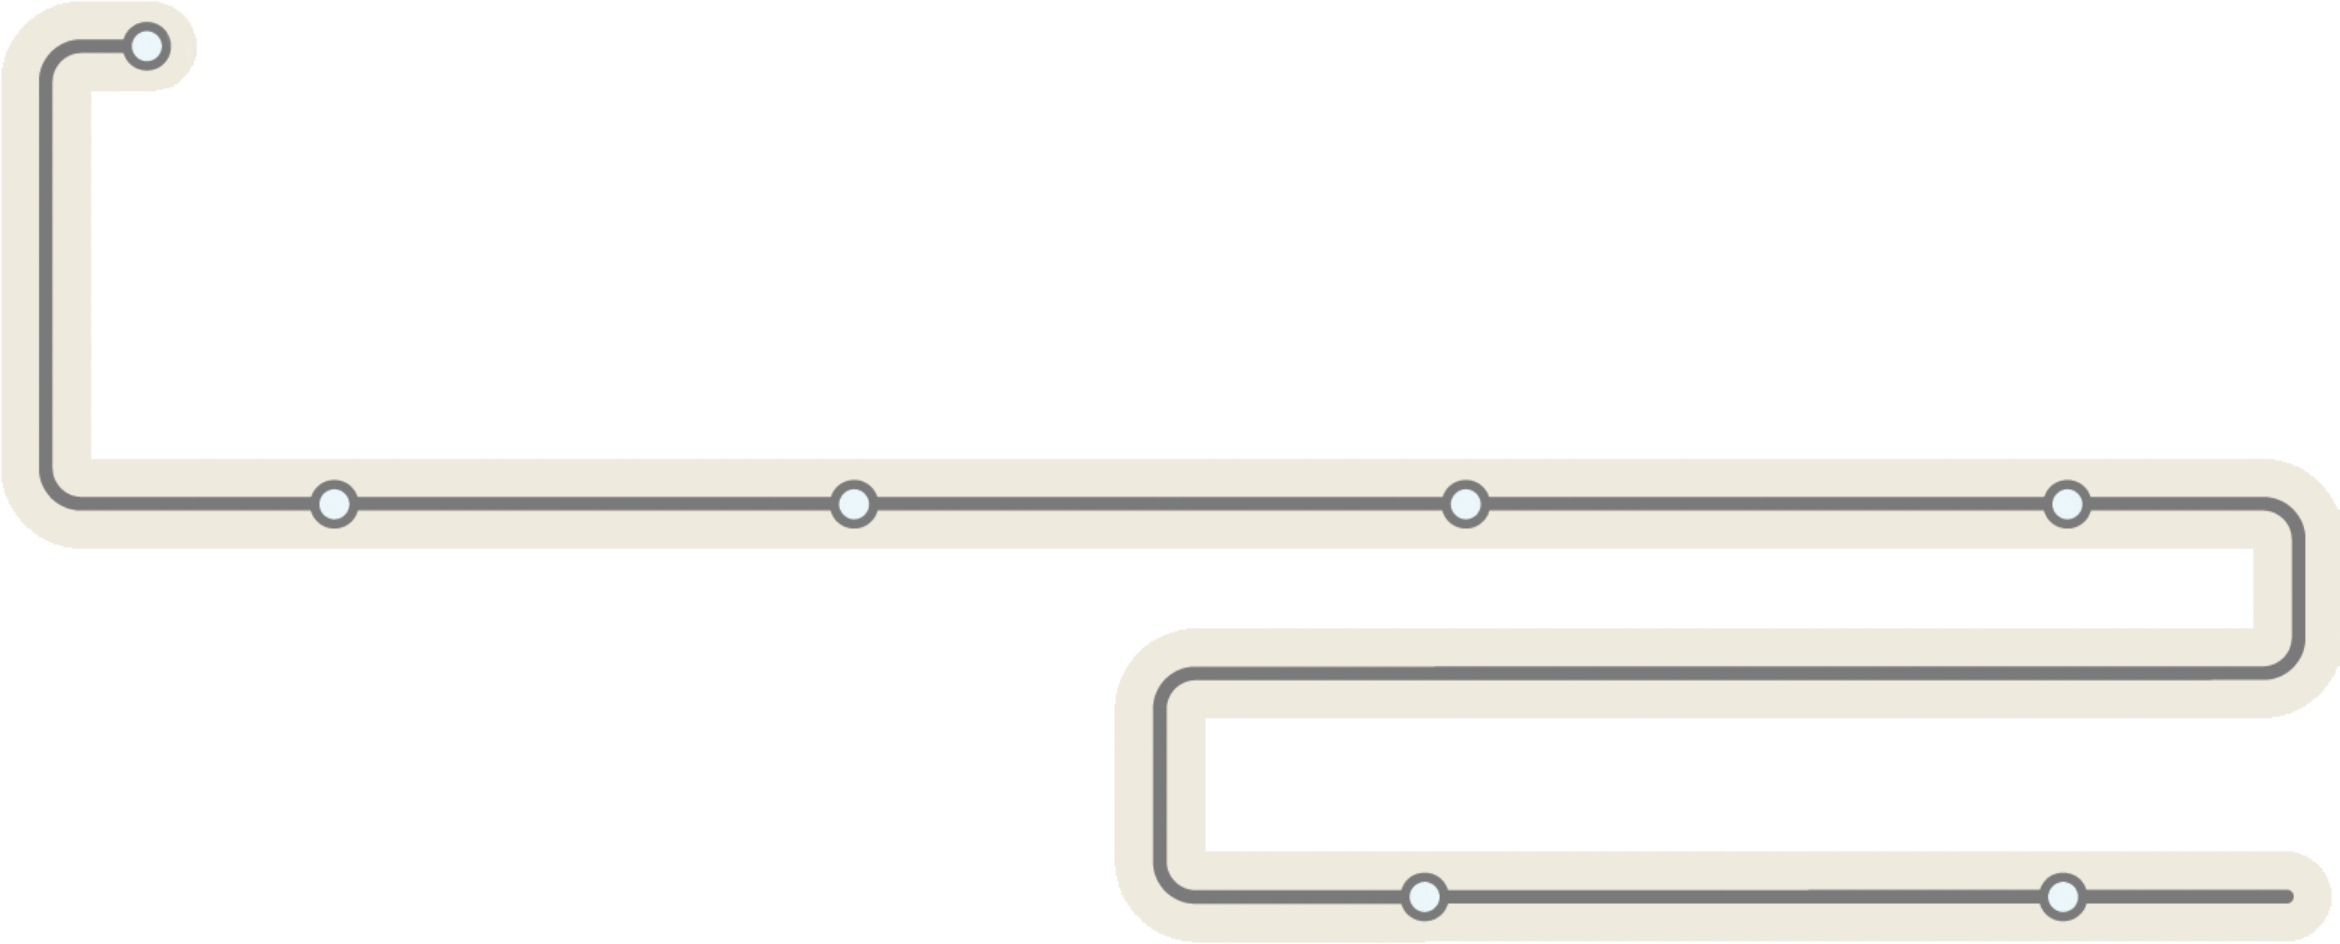 Line showing the process of language learning experience